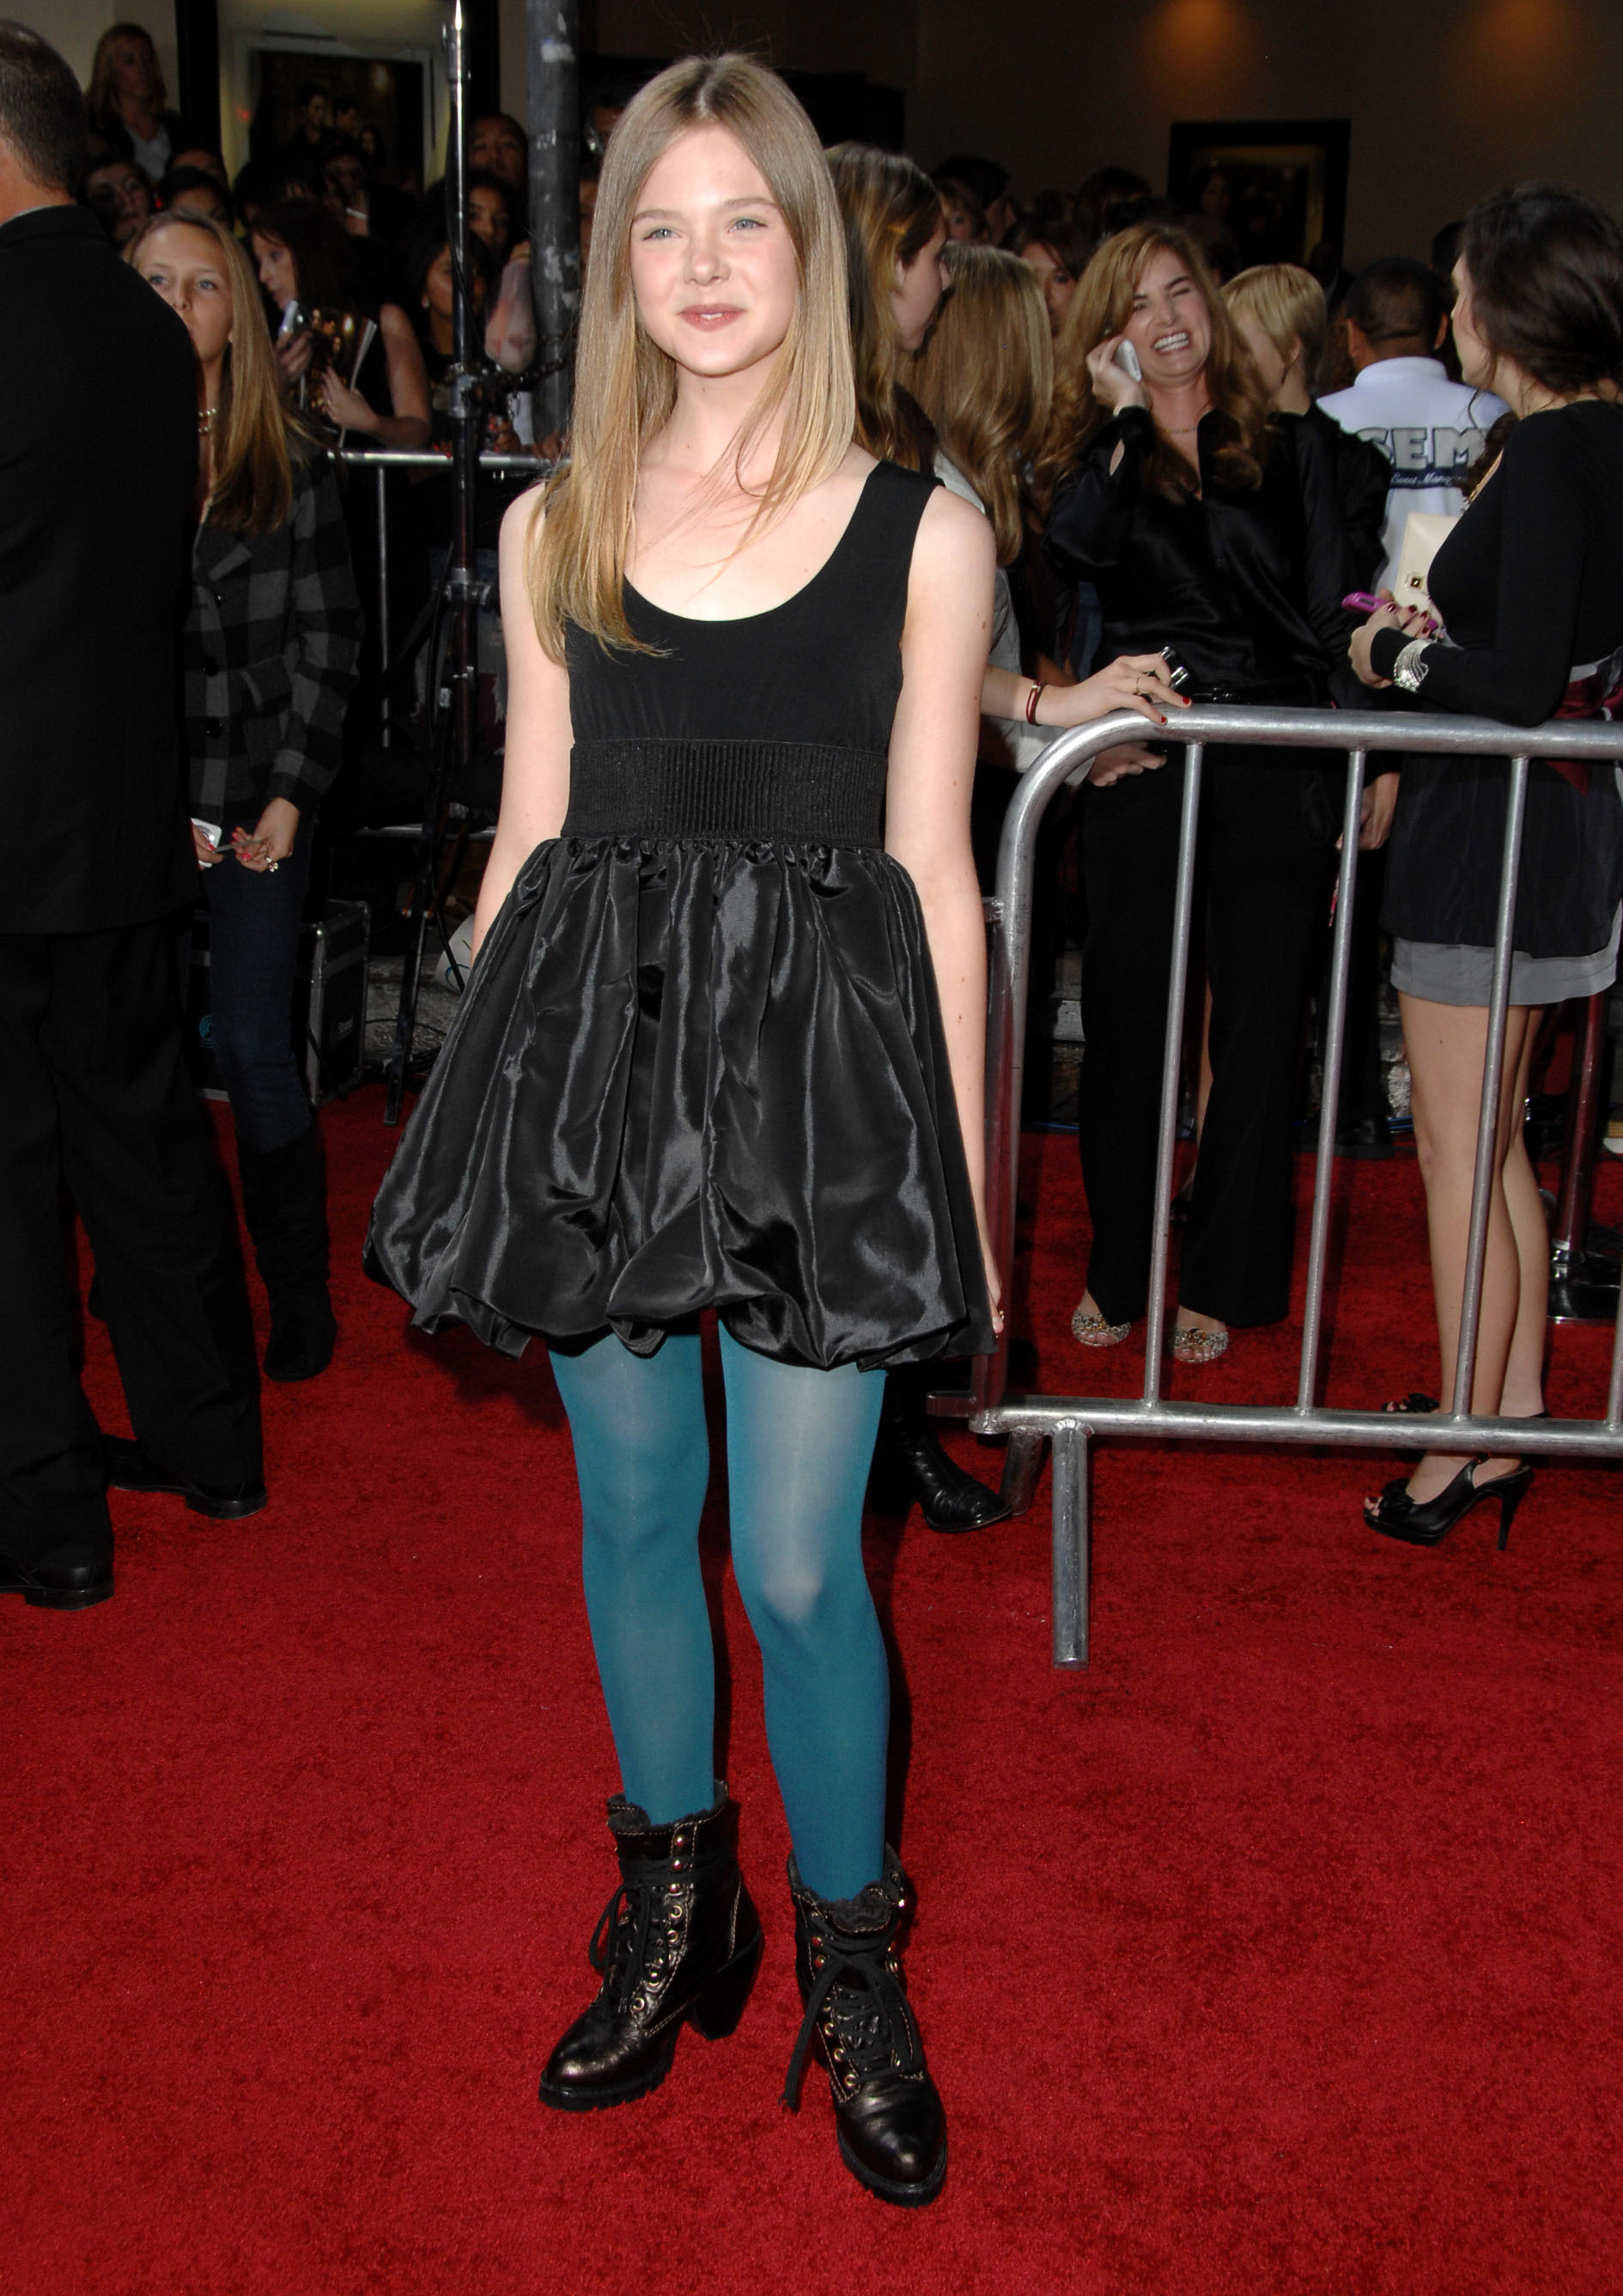 Elle Fanning Beauty And Style Evolution Through The Years